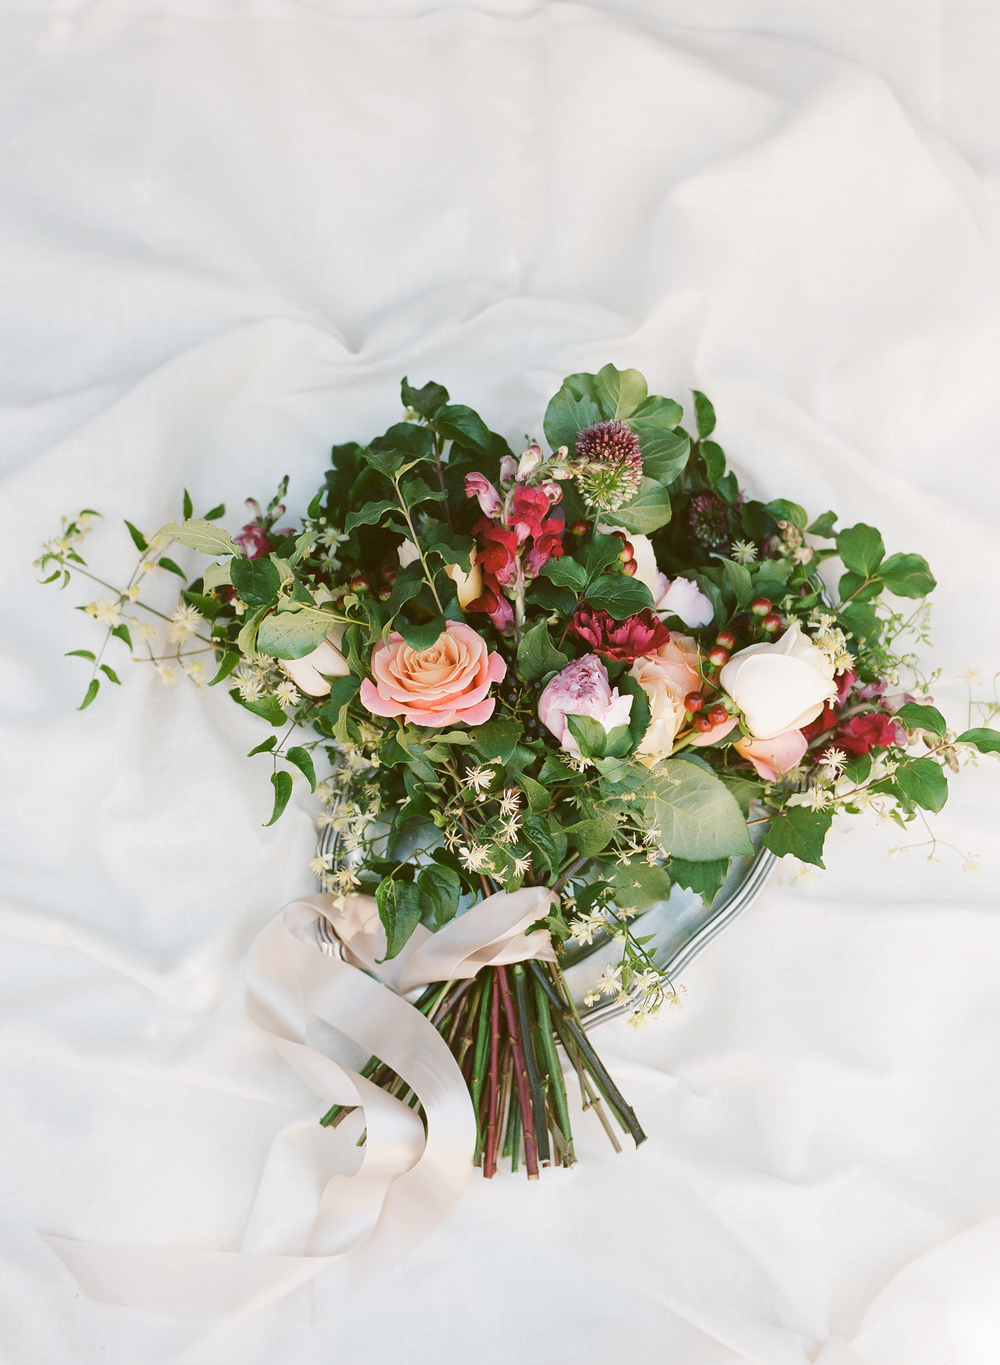 A colorful, rustic, bouquet designed by Fleurs d'Atelier; photo by Sylvie Gil